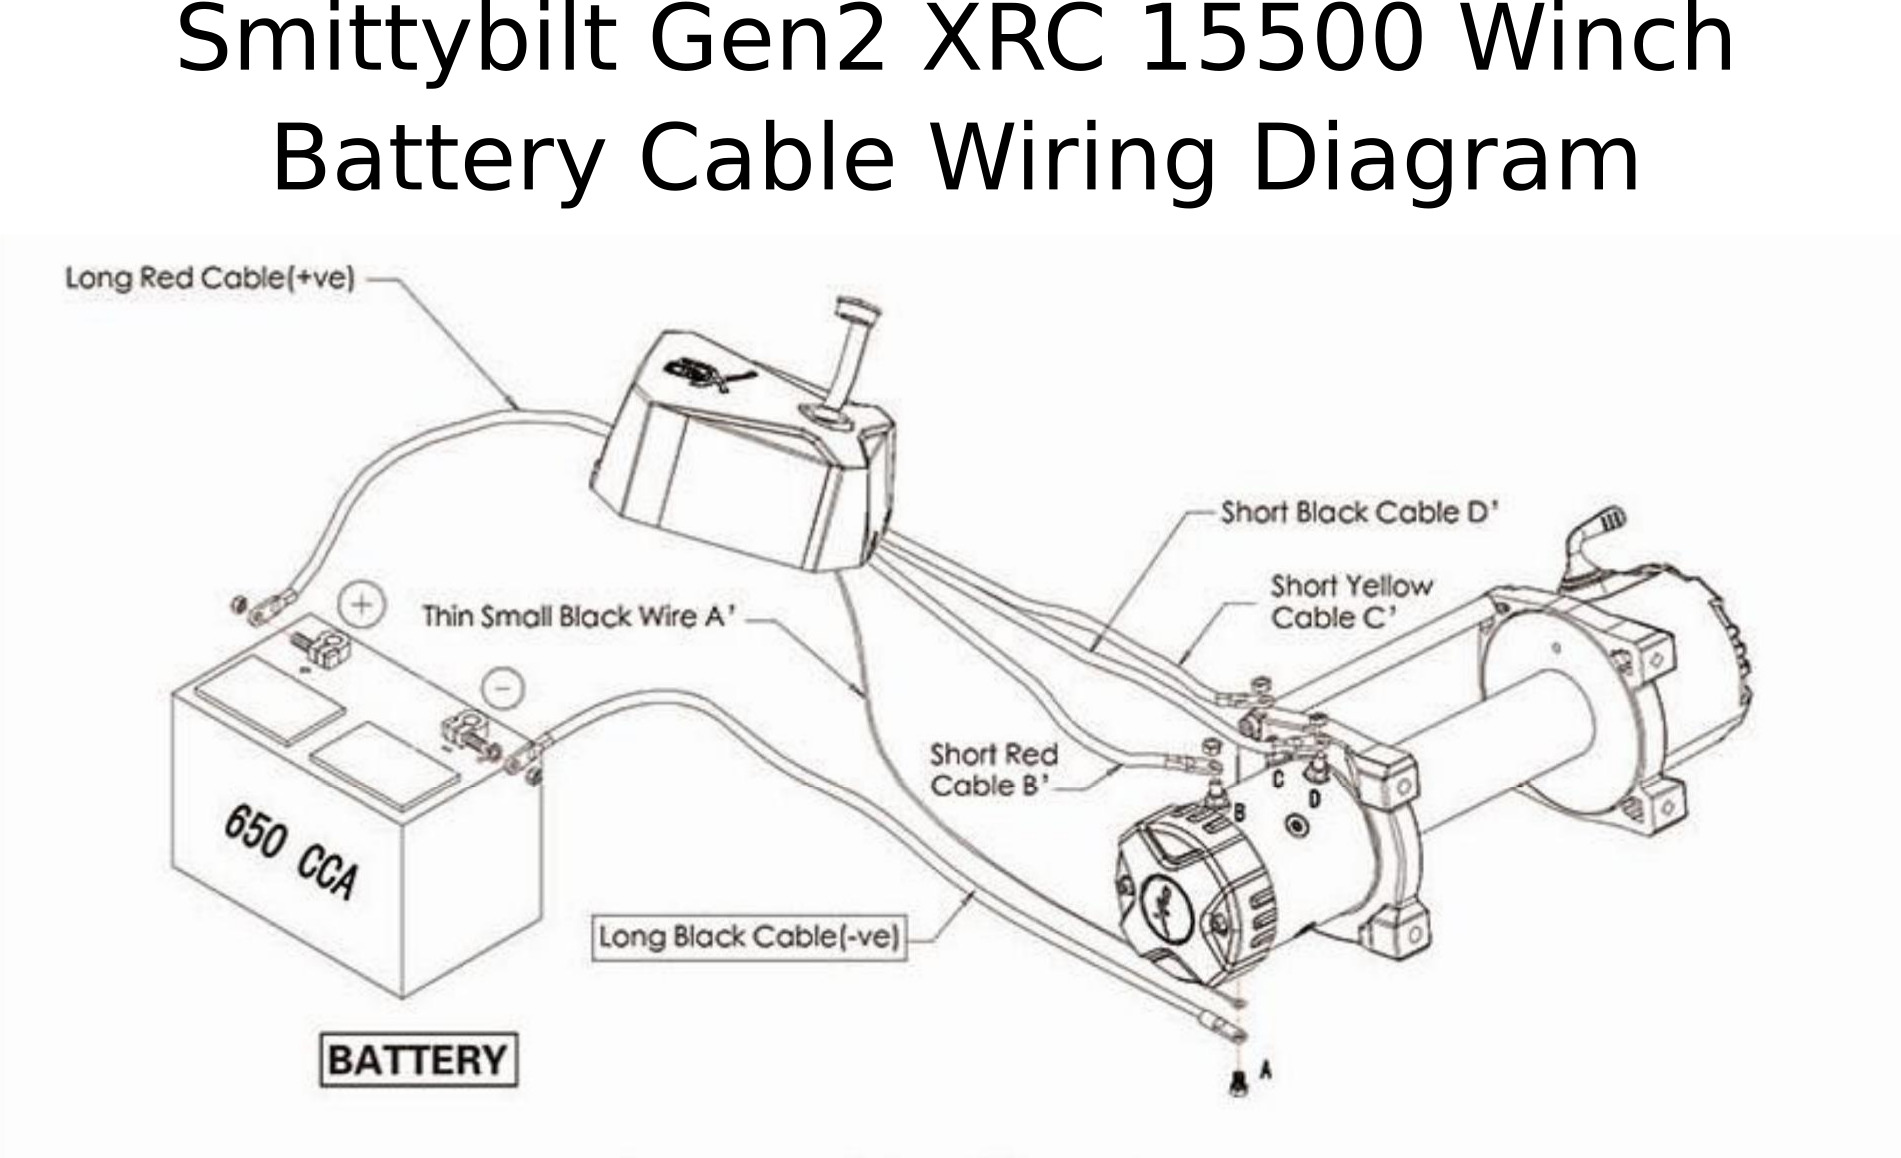 smittybilt winch wiring diagram wiring diagrams sort Smittybilt XRC8 Winch Manual